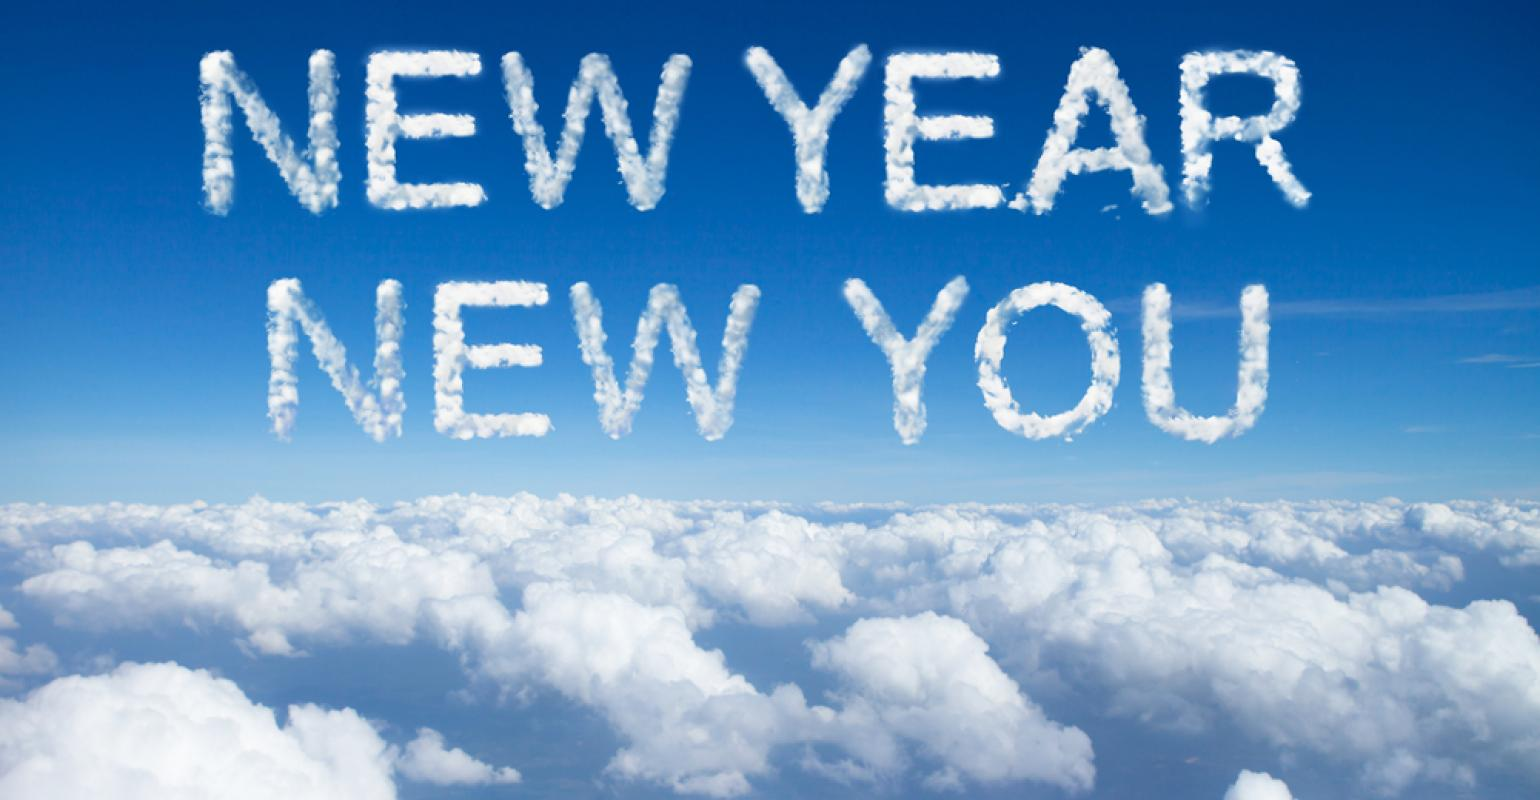 Better New Year in Your Hands